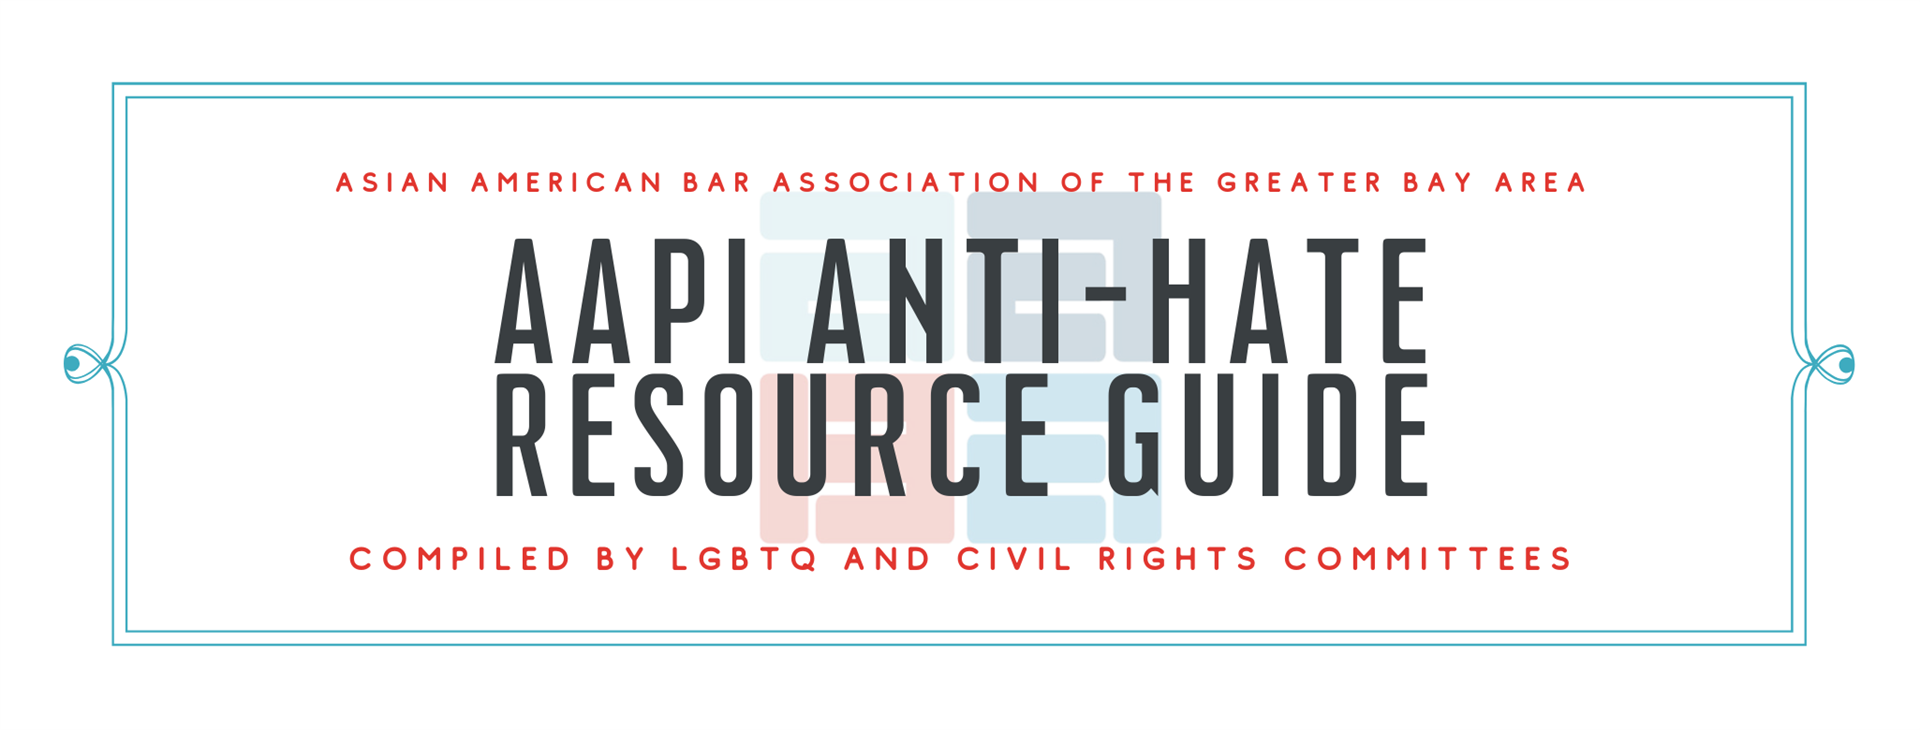 AAPI Anti-Hate Resource Guide